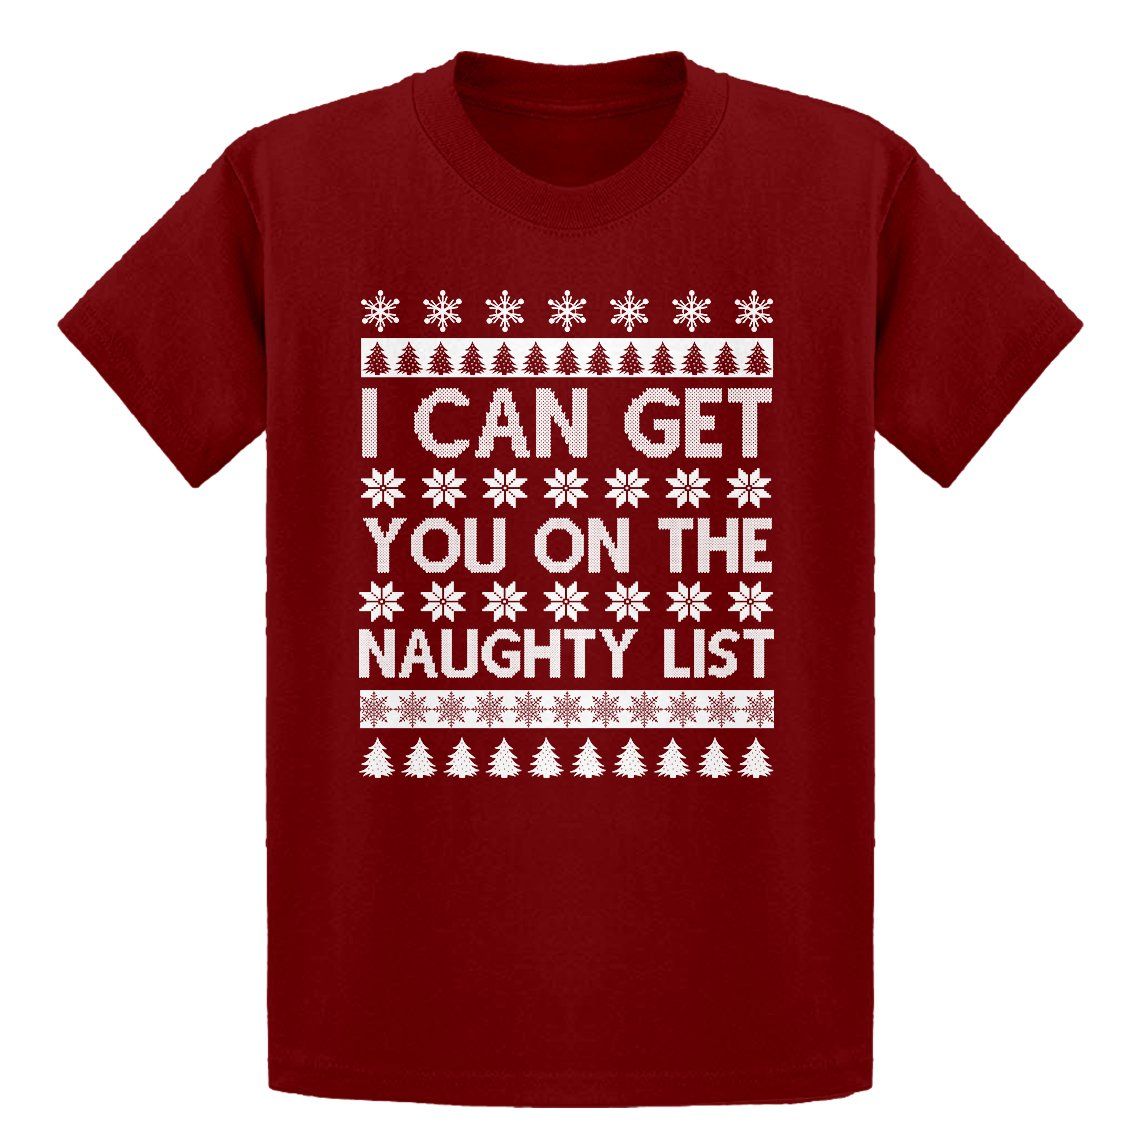 I can get You on The Naughty List Kids T-Shirt